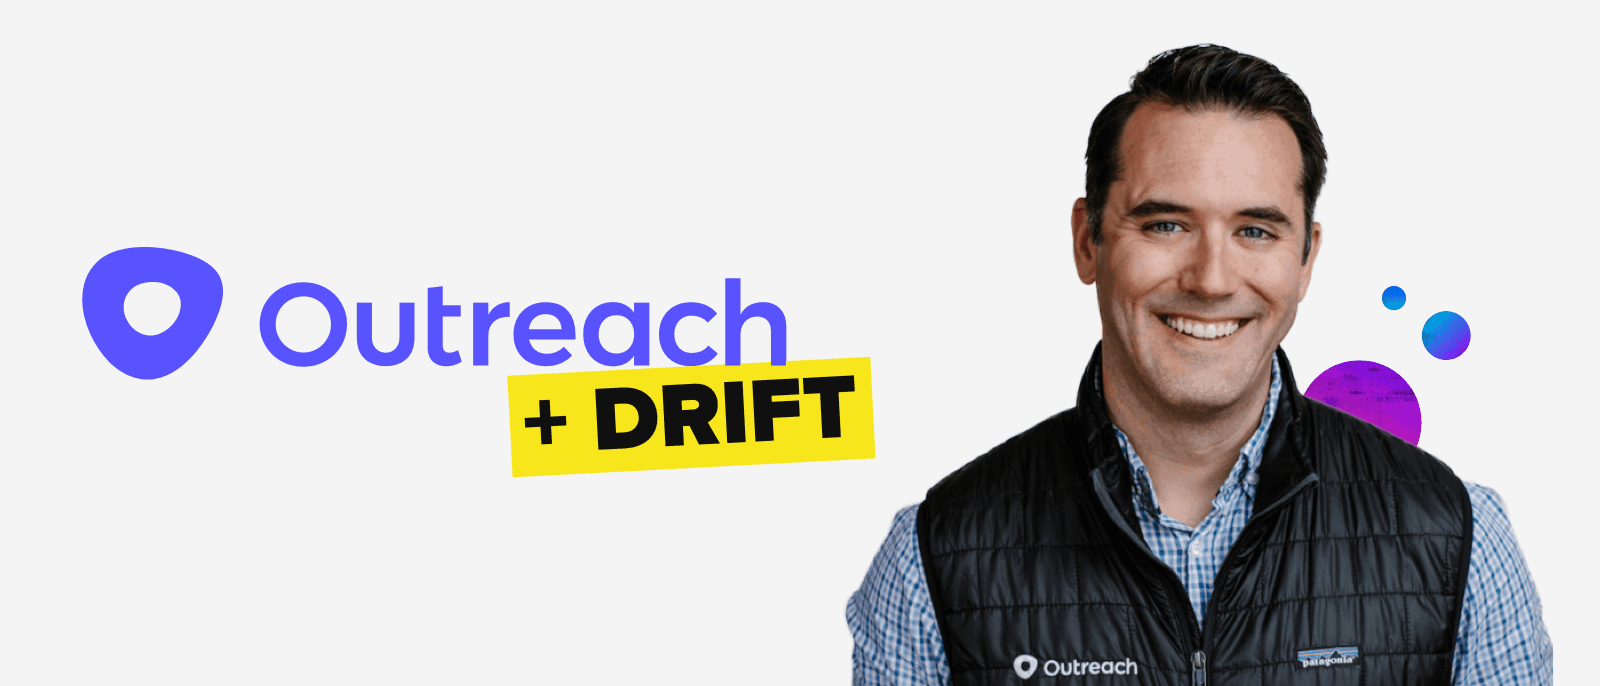 Outreach for Drift